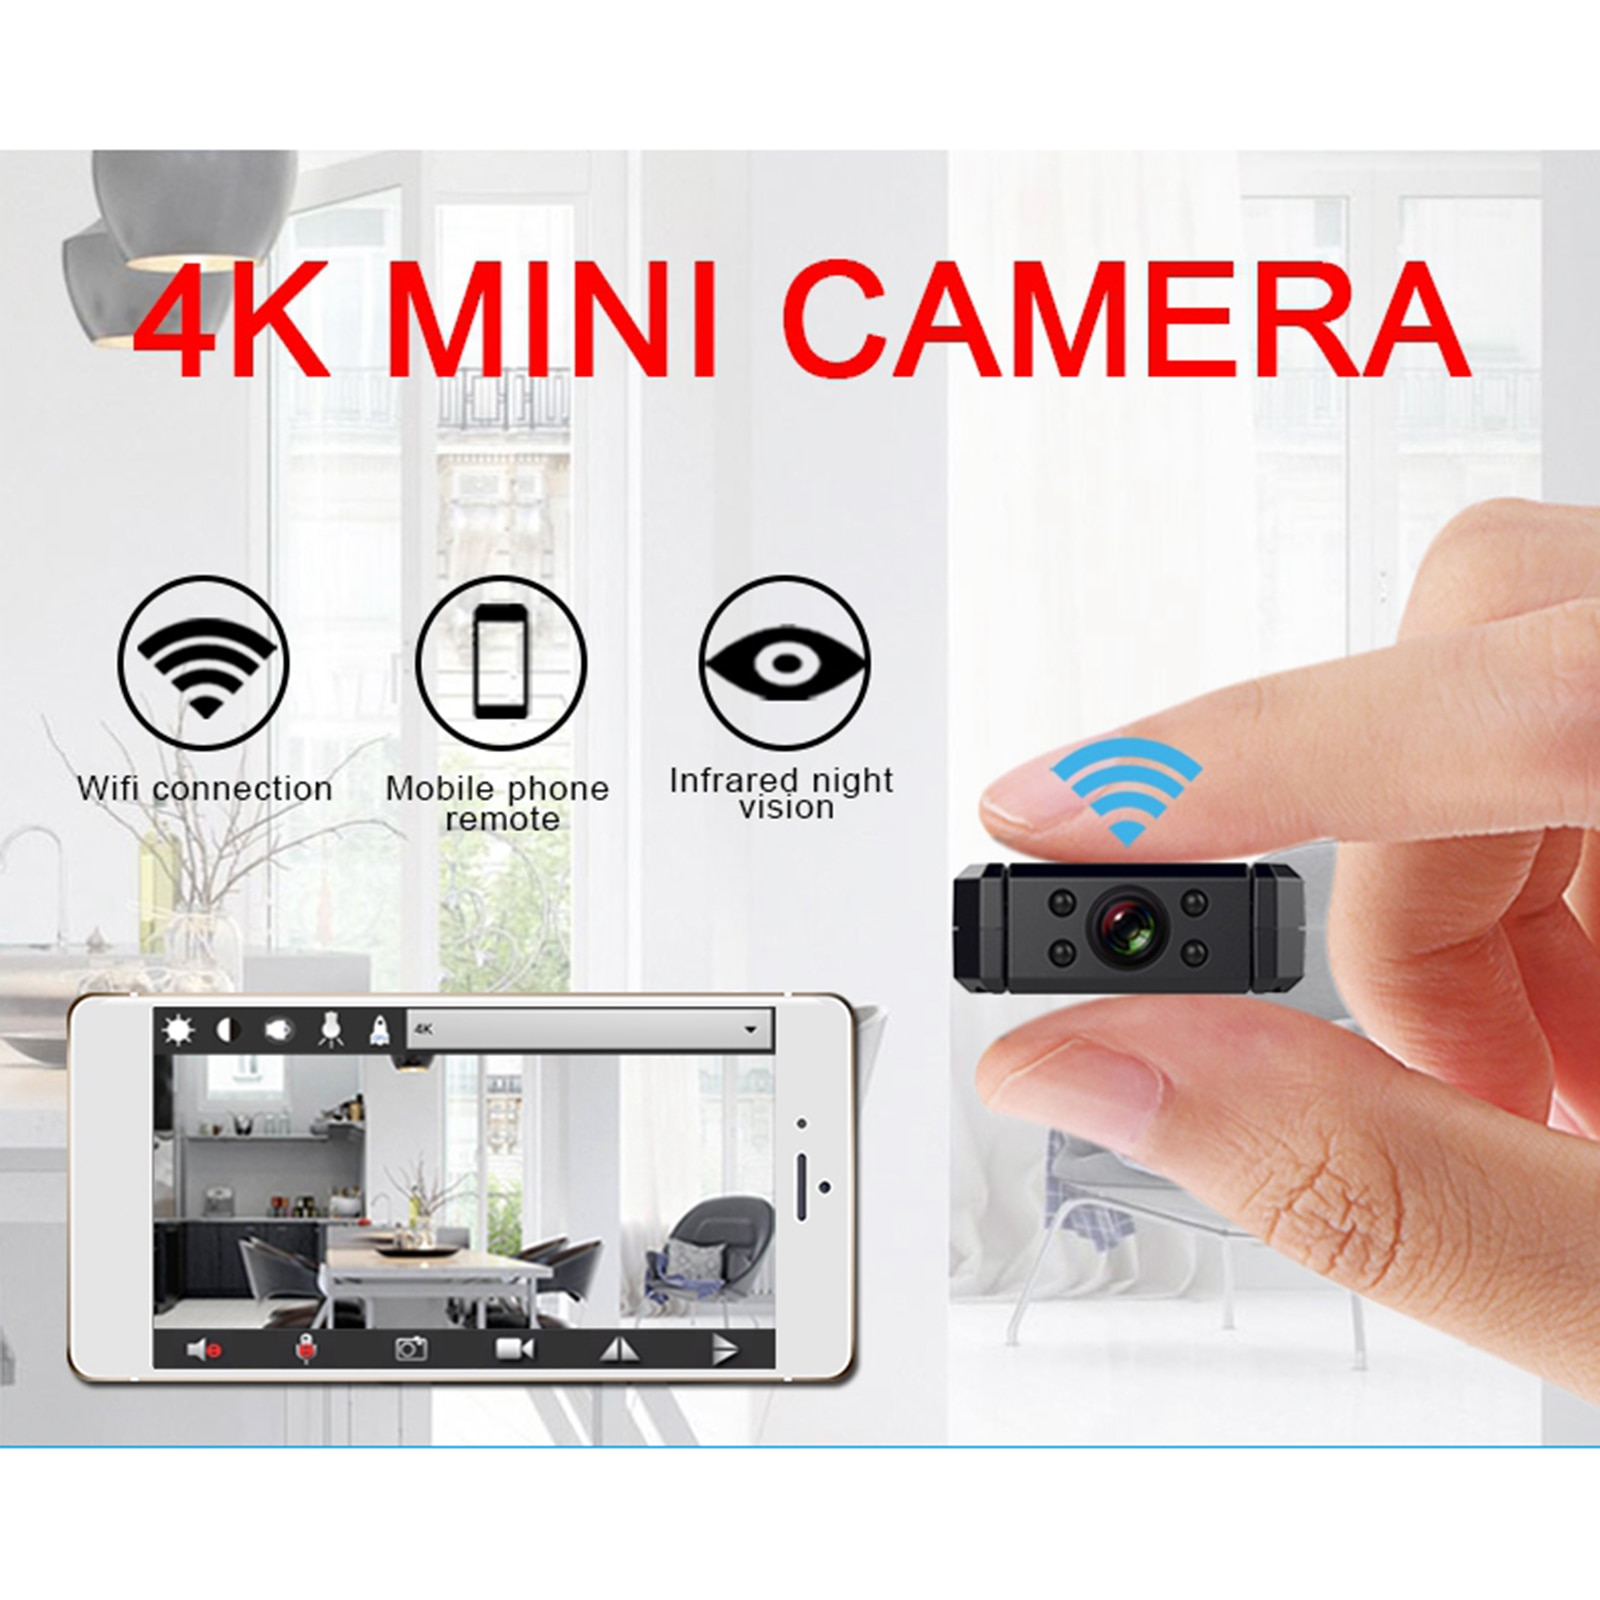 Mini Home Security Camera FHD WiFi Small Camcorder Night Vision Wide View Angle